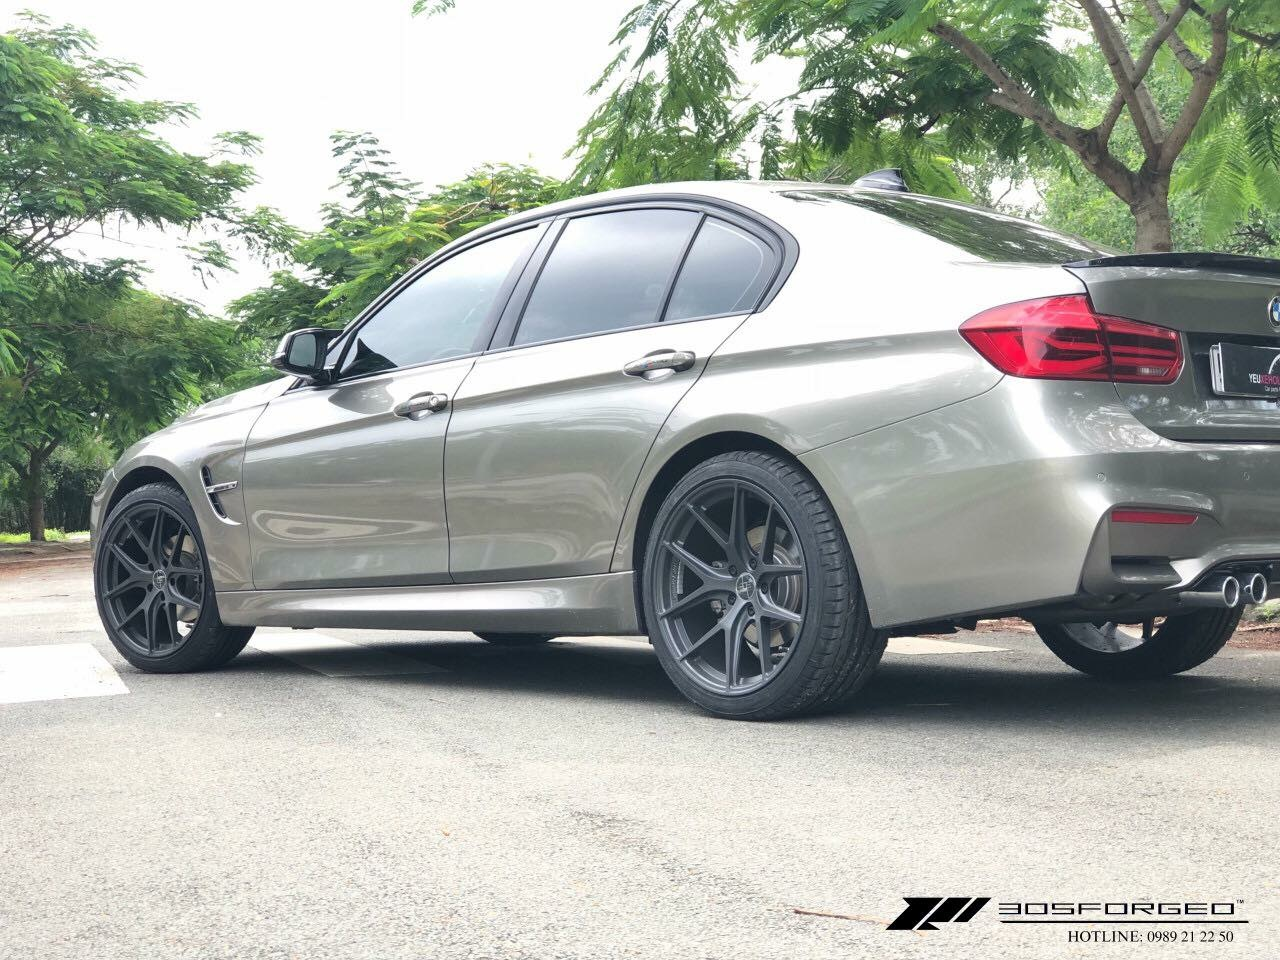 BMW F30 M3 BODYKIT / 19 INCHES 305FORGED WHEEL